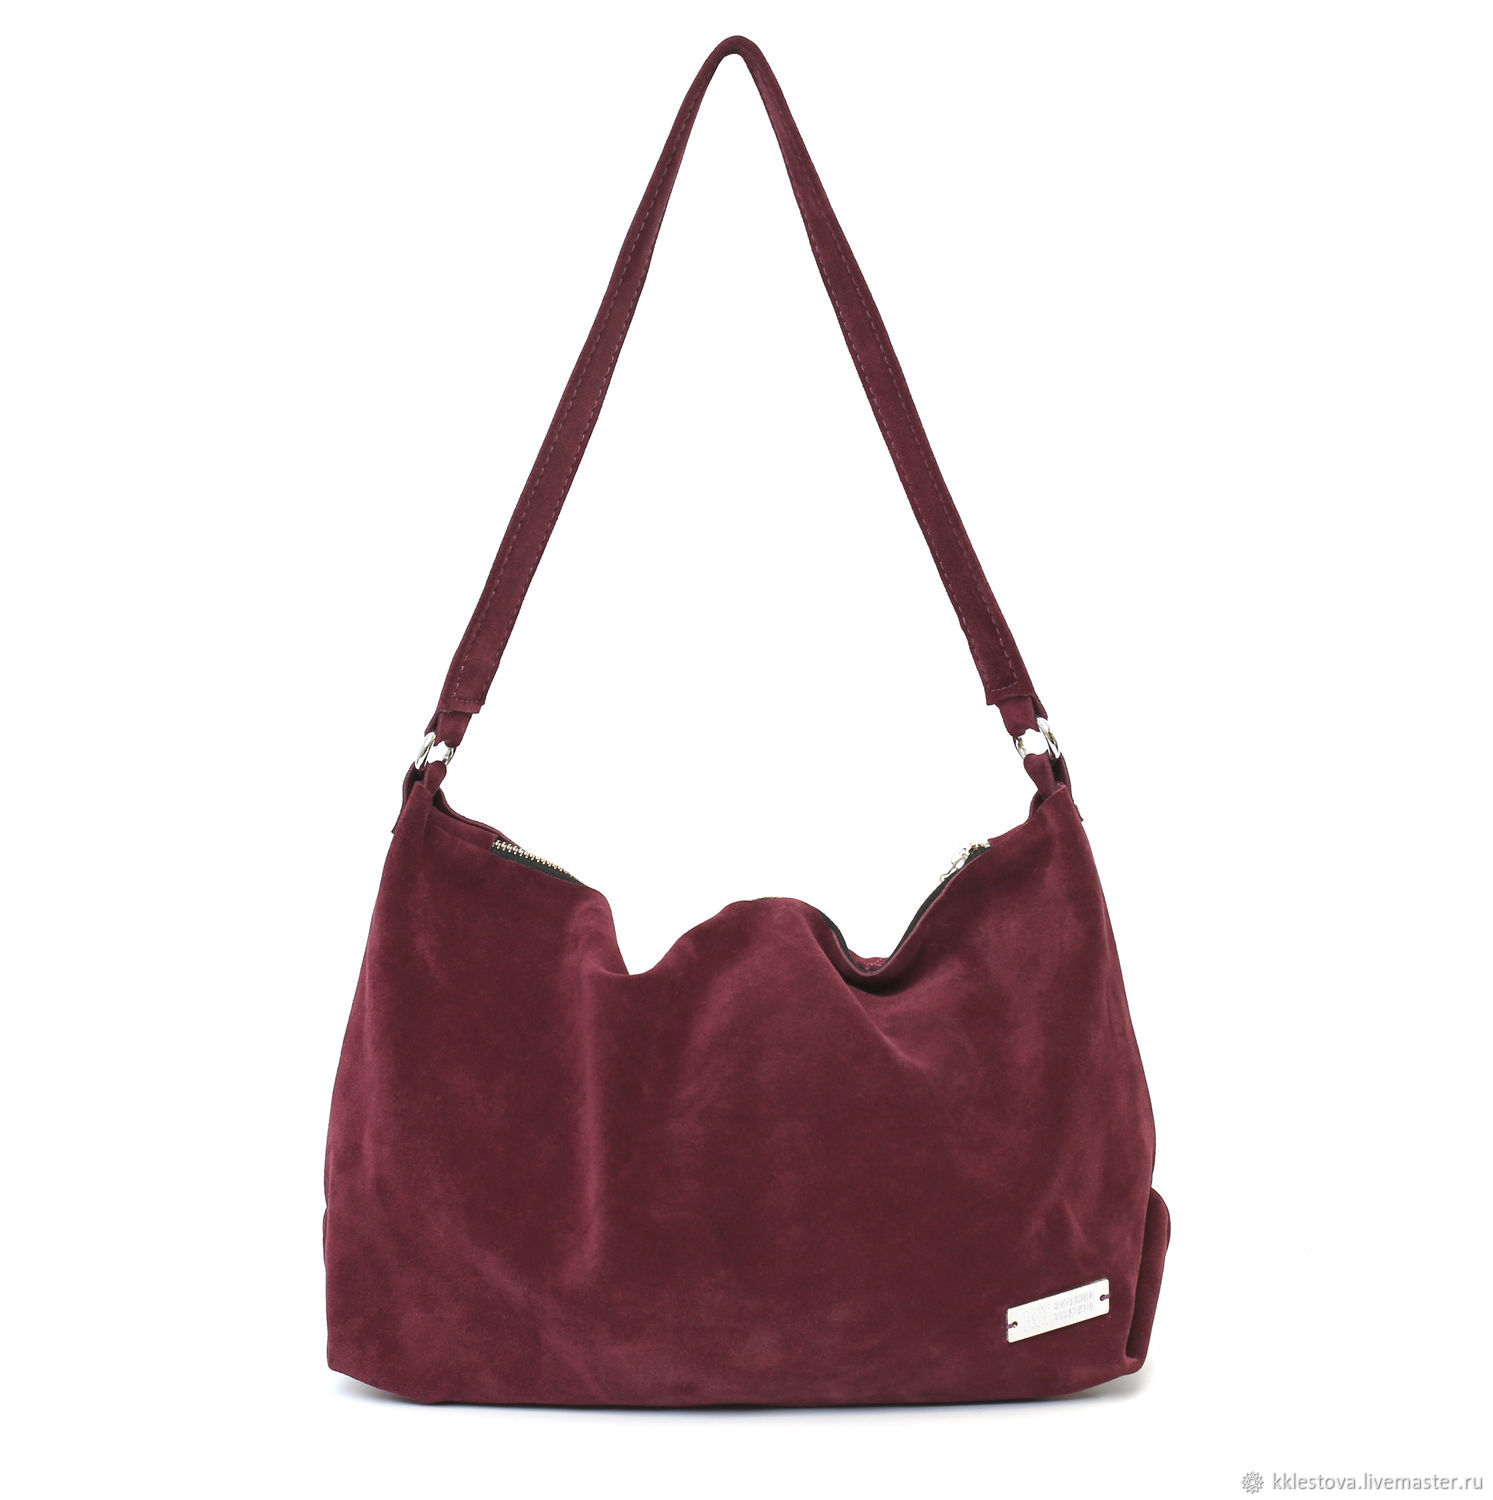 Soft Burgundy bag with shoulder strap made of suede, Sacks, Moscow,  Фото №1